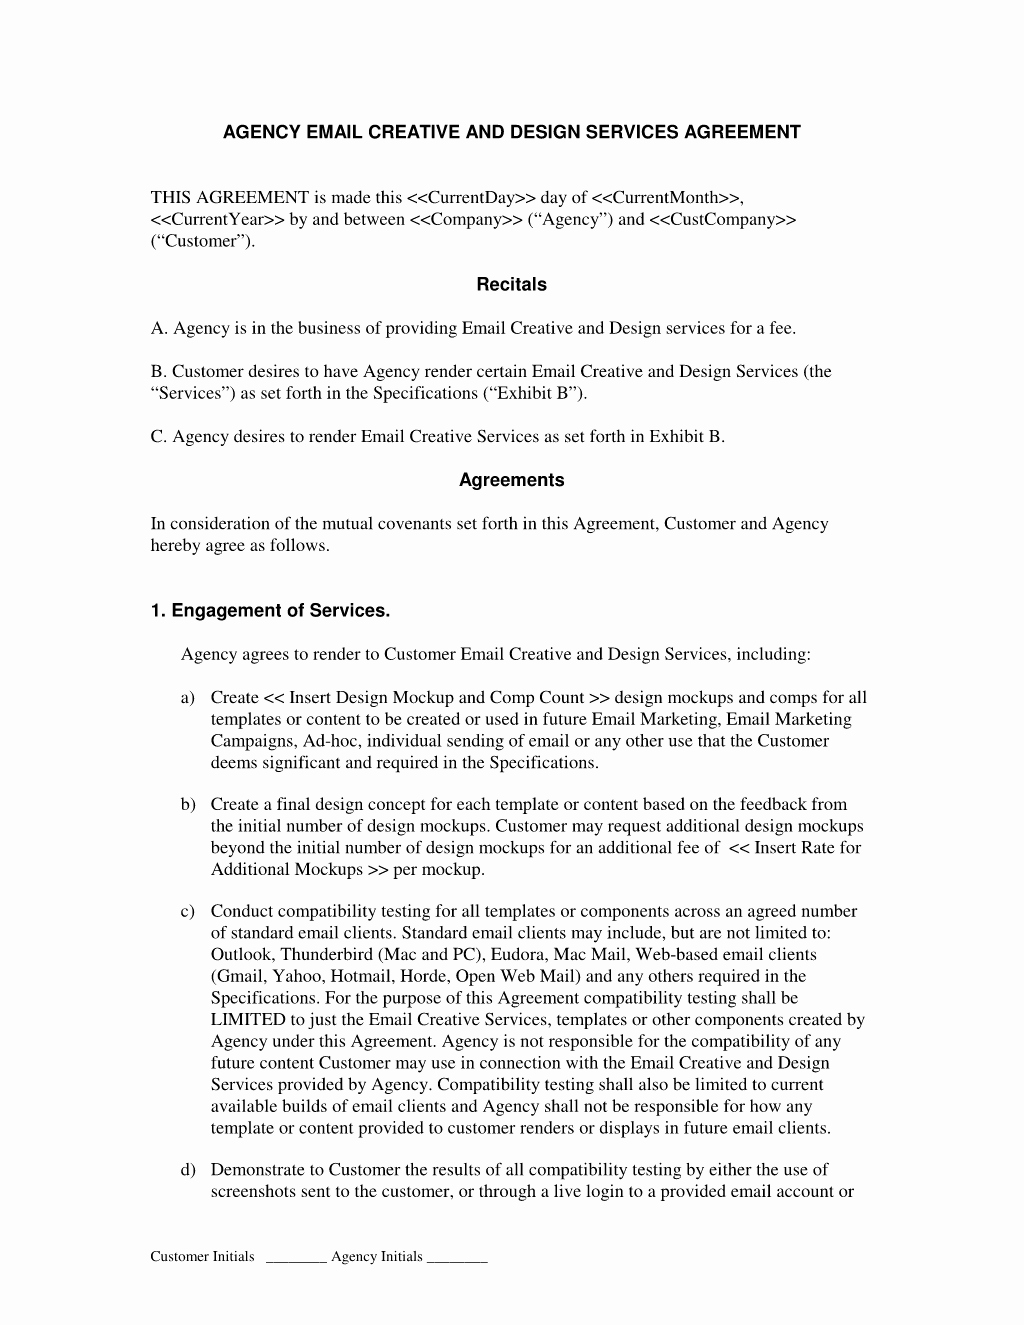 Digital Marketing Contract Template Inspirational Email Marketing Creative by Agency Agreement Advertising and Ad Agency Contract